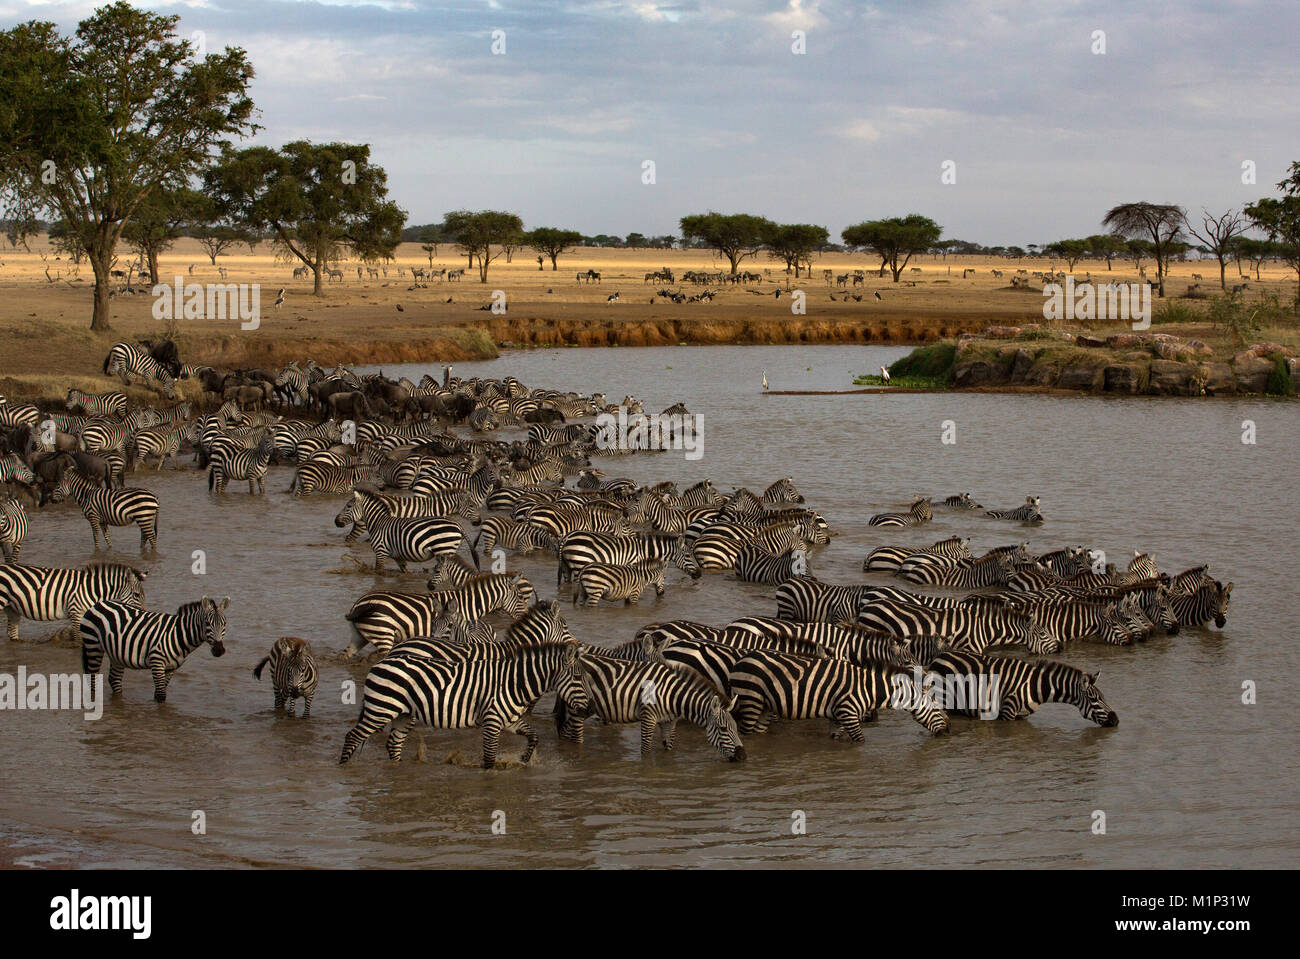 Herd of zebras (Equus quagga) drinking water, Serengeti National Park, Tanzania, East Africa, Africa - Stock Image